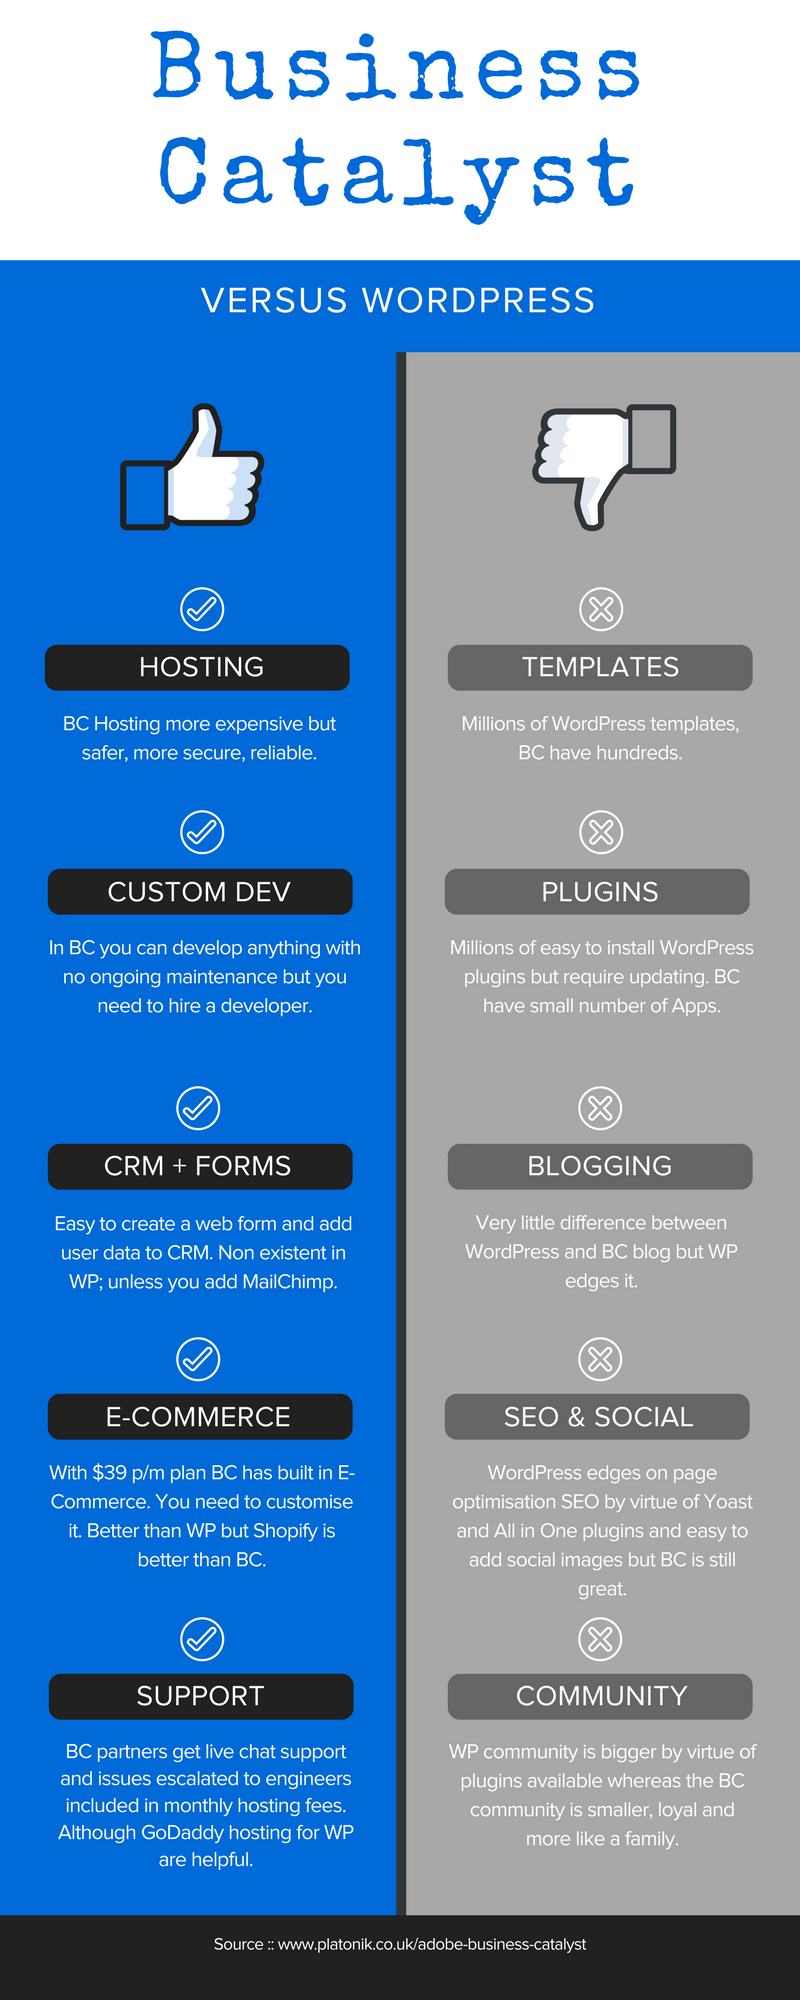 Adobe Business Catalyst v WordPress Infographic